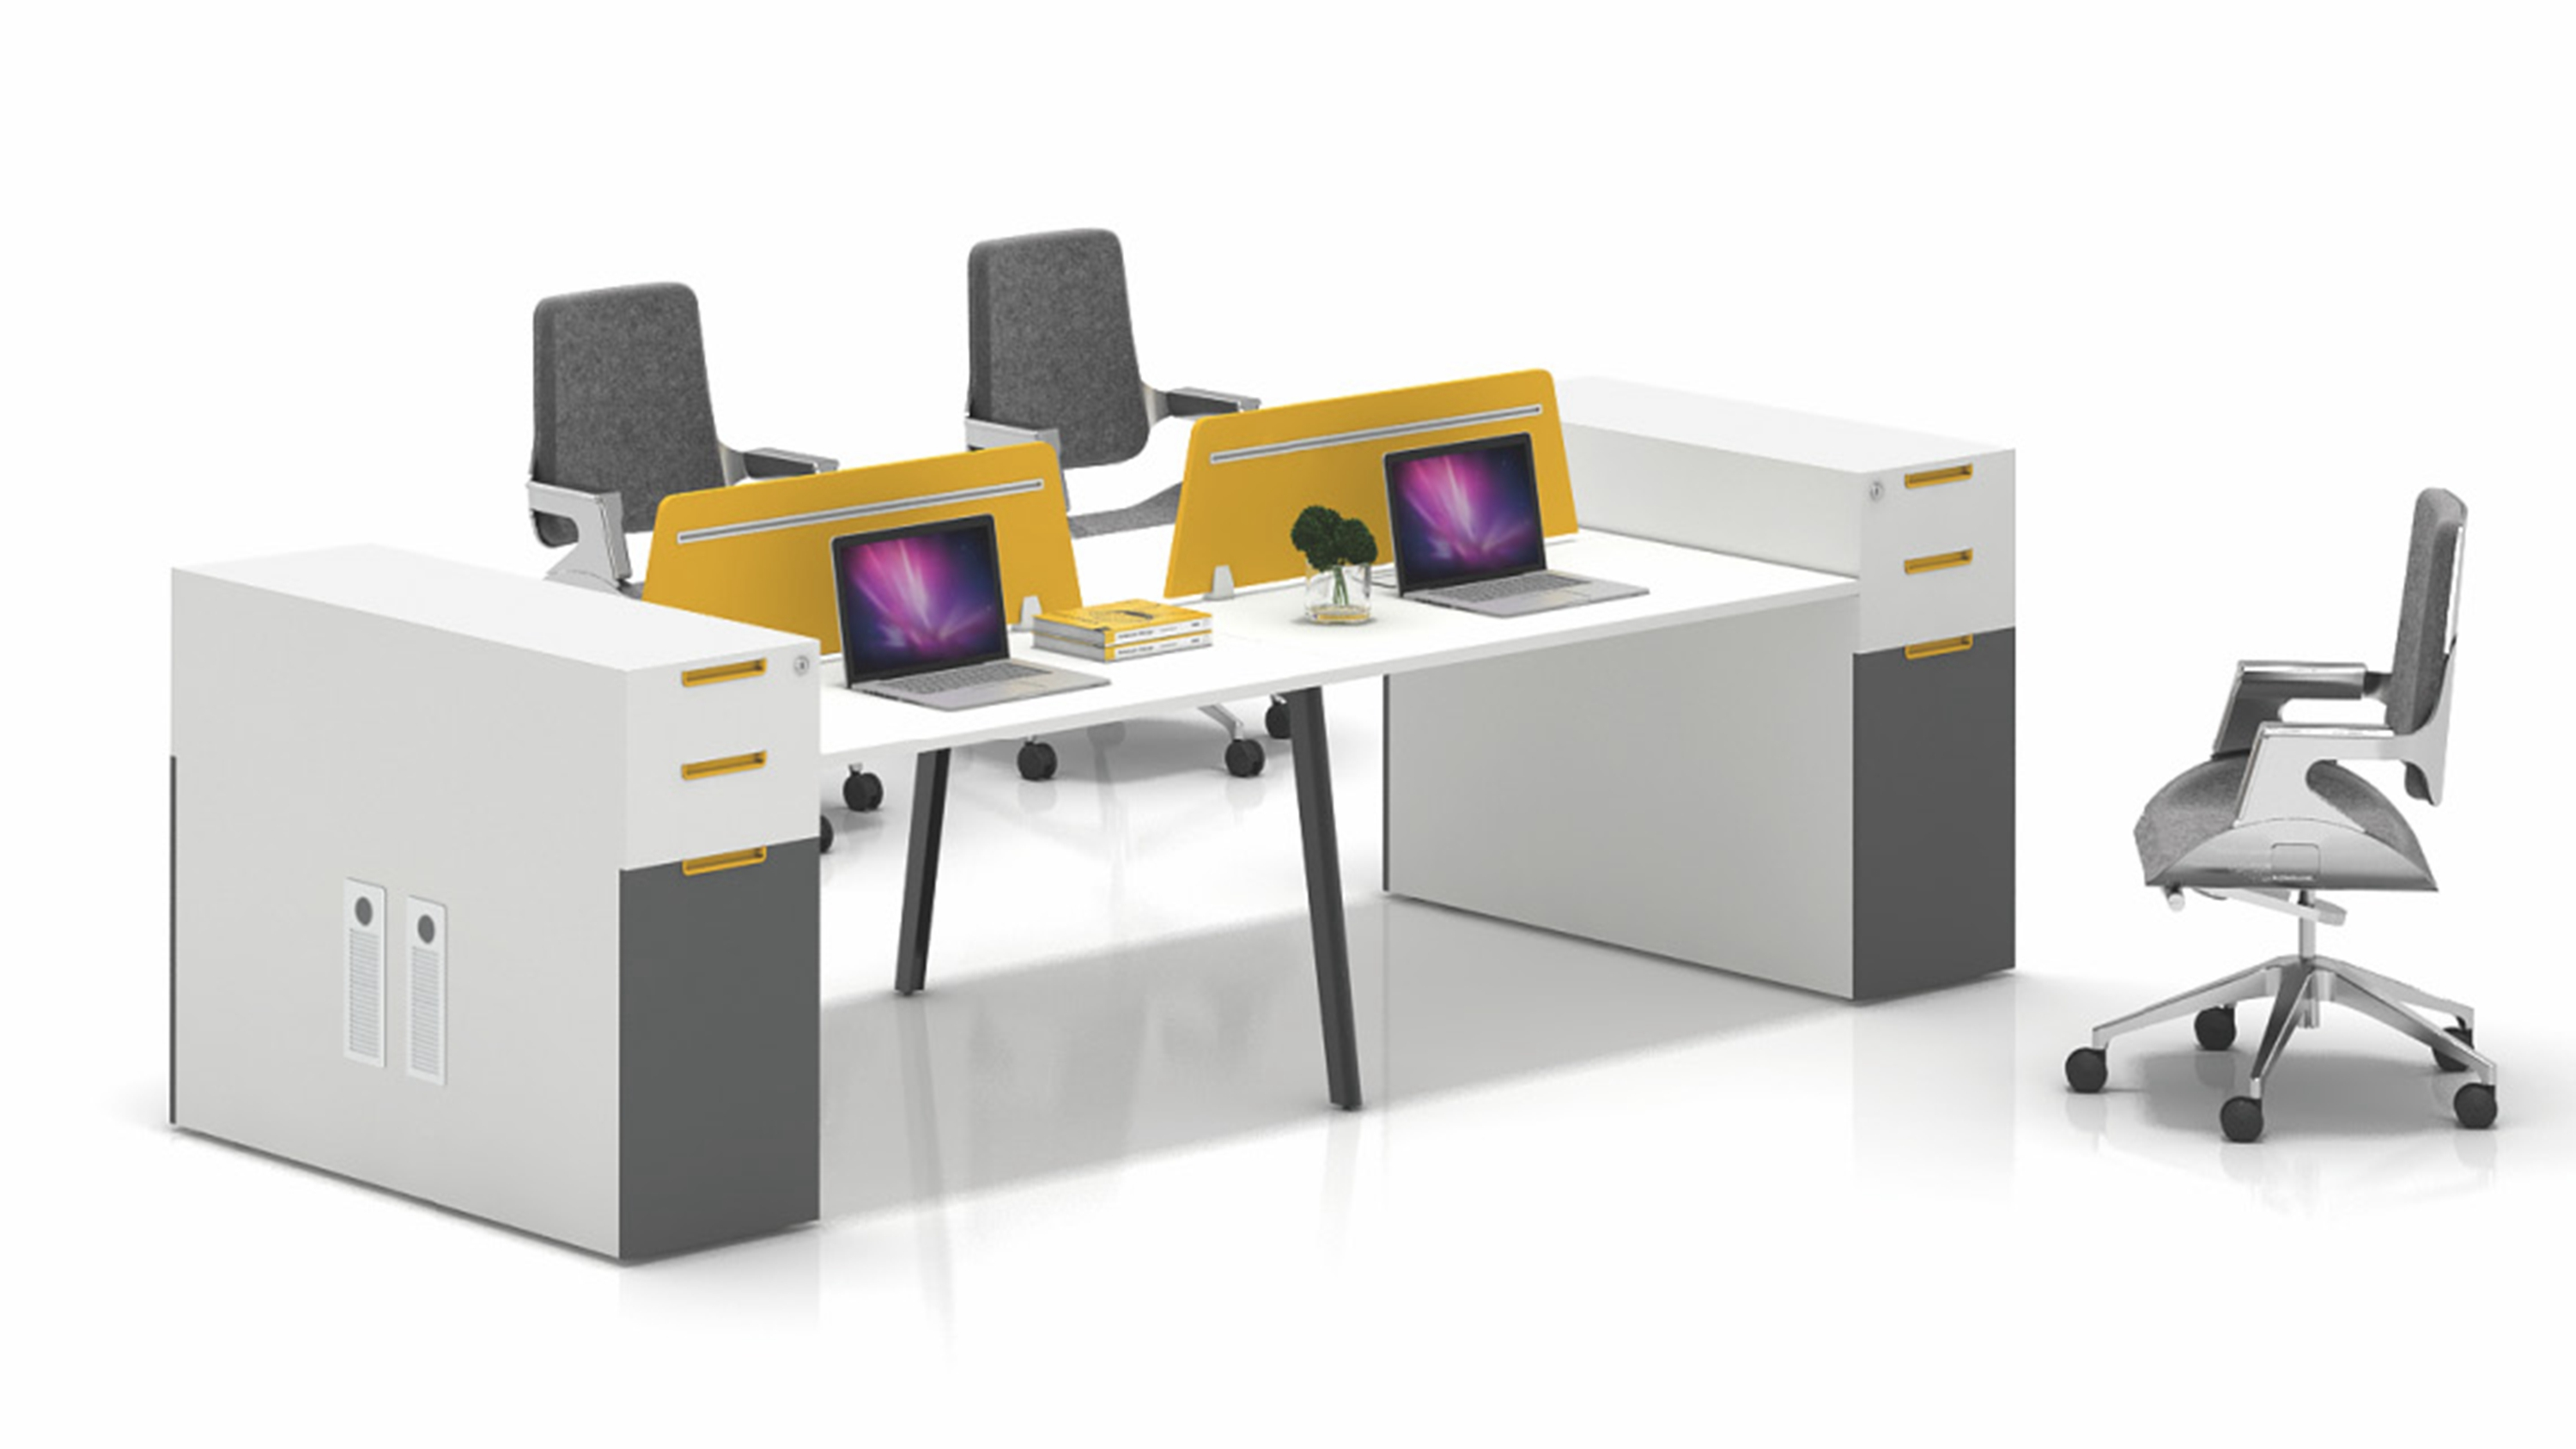 top quality office desk workstation. Top Sale High Quality Modular Commercial Furniture Office Four Workstations Desk Workstation